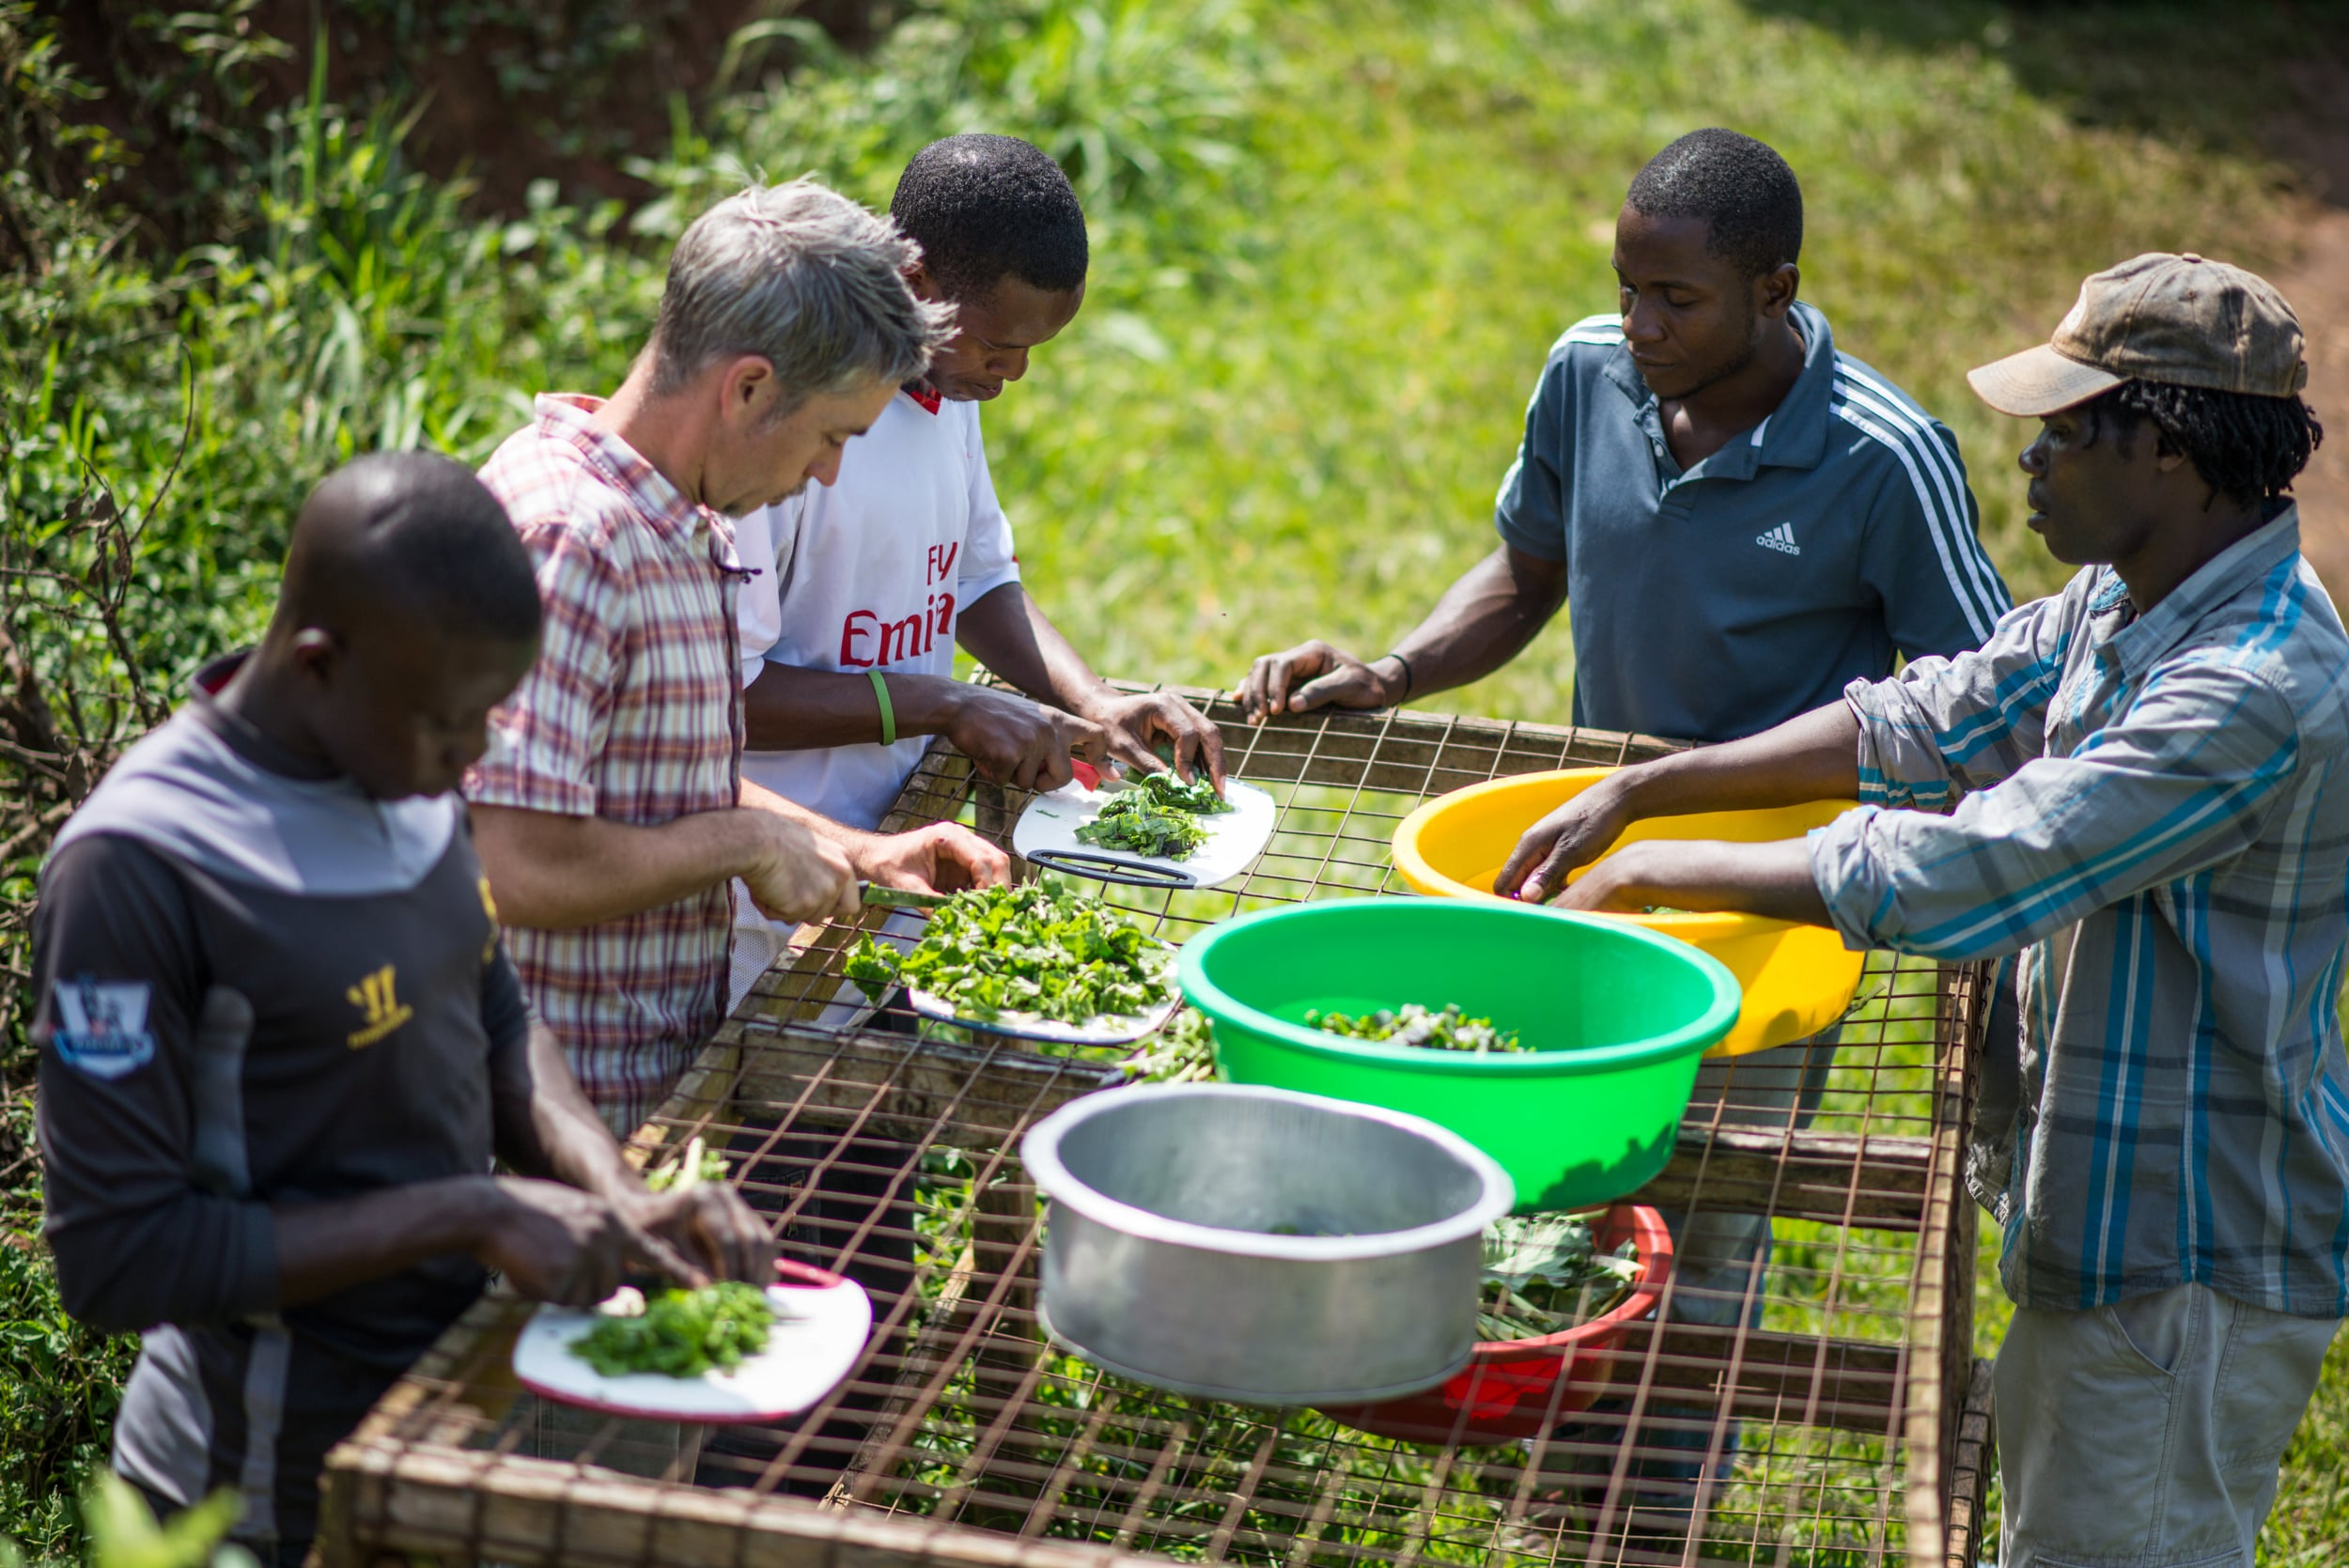 Seth (left middle) and Reuben (far right) help the students process fresh produce and prepare the greens for their first salad. They loved it!